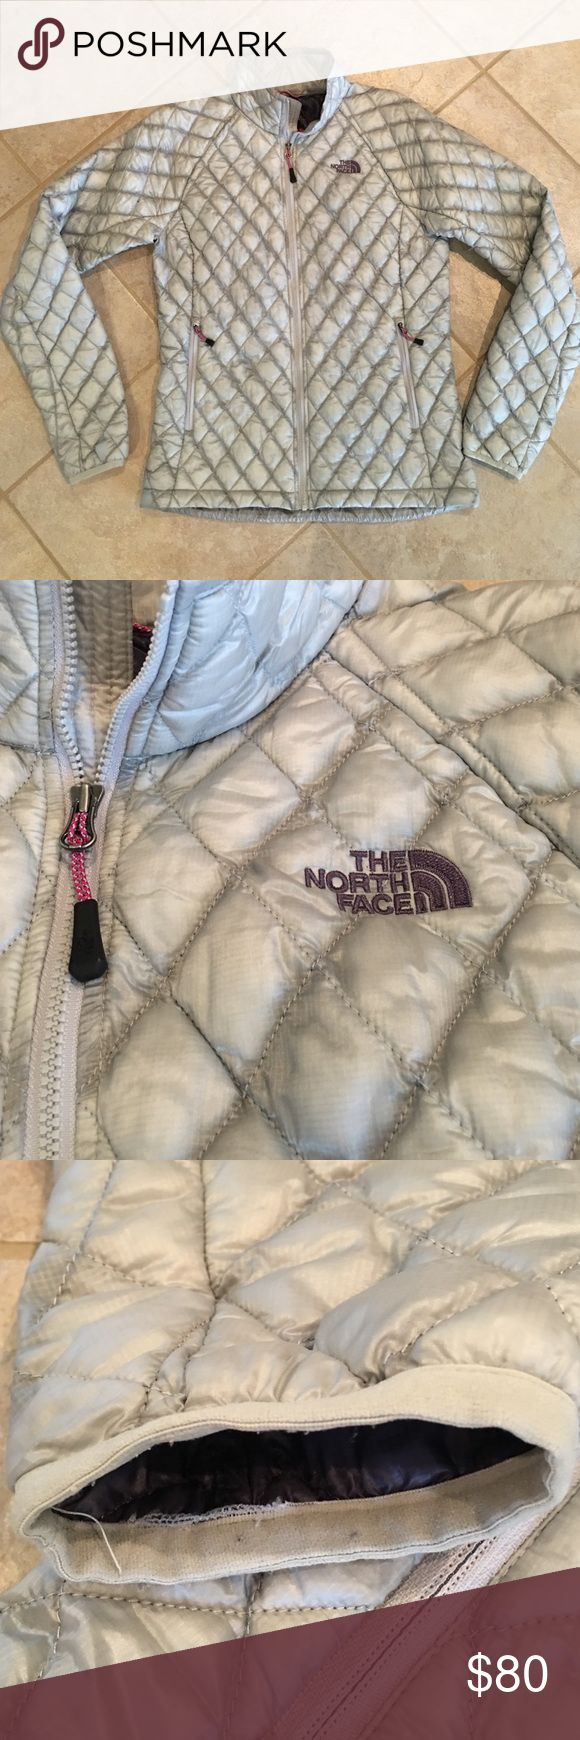 The North Face Thermoball Jacket Size S This jacket has been lightly worn but is in great used condition. Only sign of wear is at the cuffs of the sleeves, as seen in third photo. Extremely lightweight, not too puffy, and very warm. Medium grey/silver color with dark purple lining and pink accents at zipper pulls.  Smoke free home. No trades, holds, outside sales, or lowball offers. The North Face Jackets & Coats